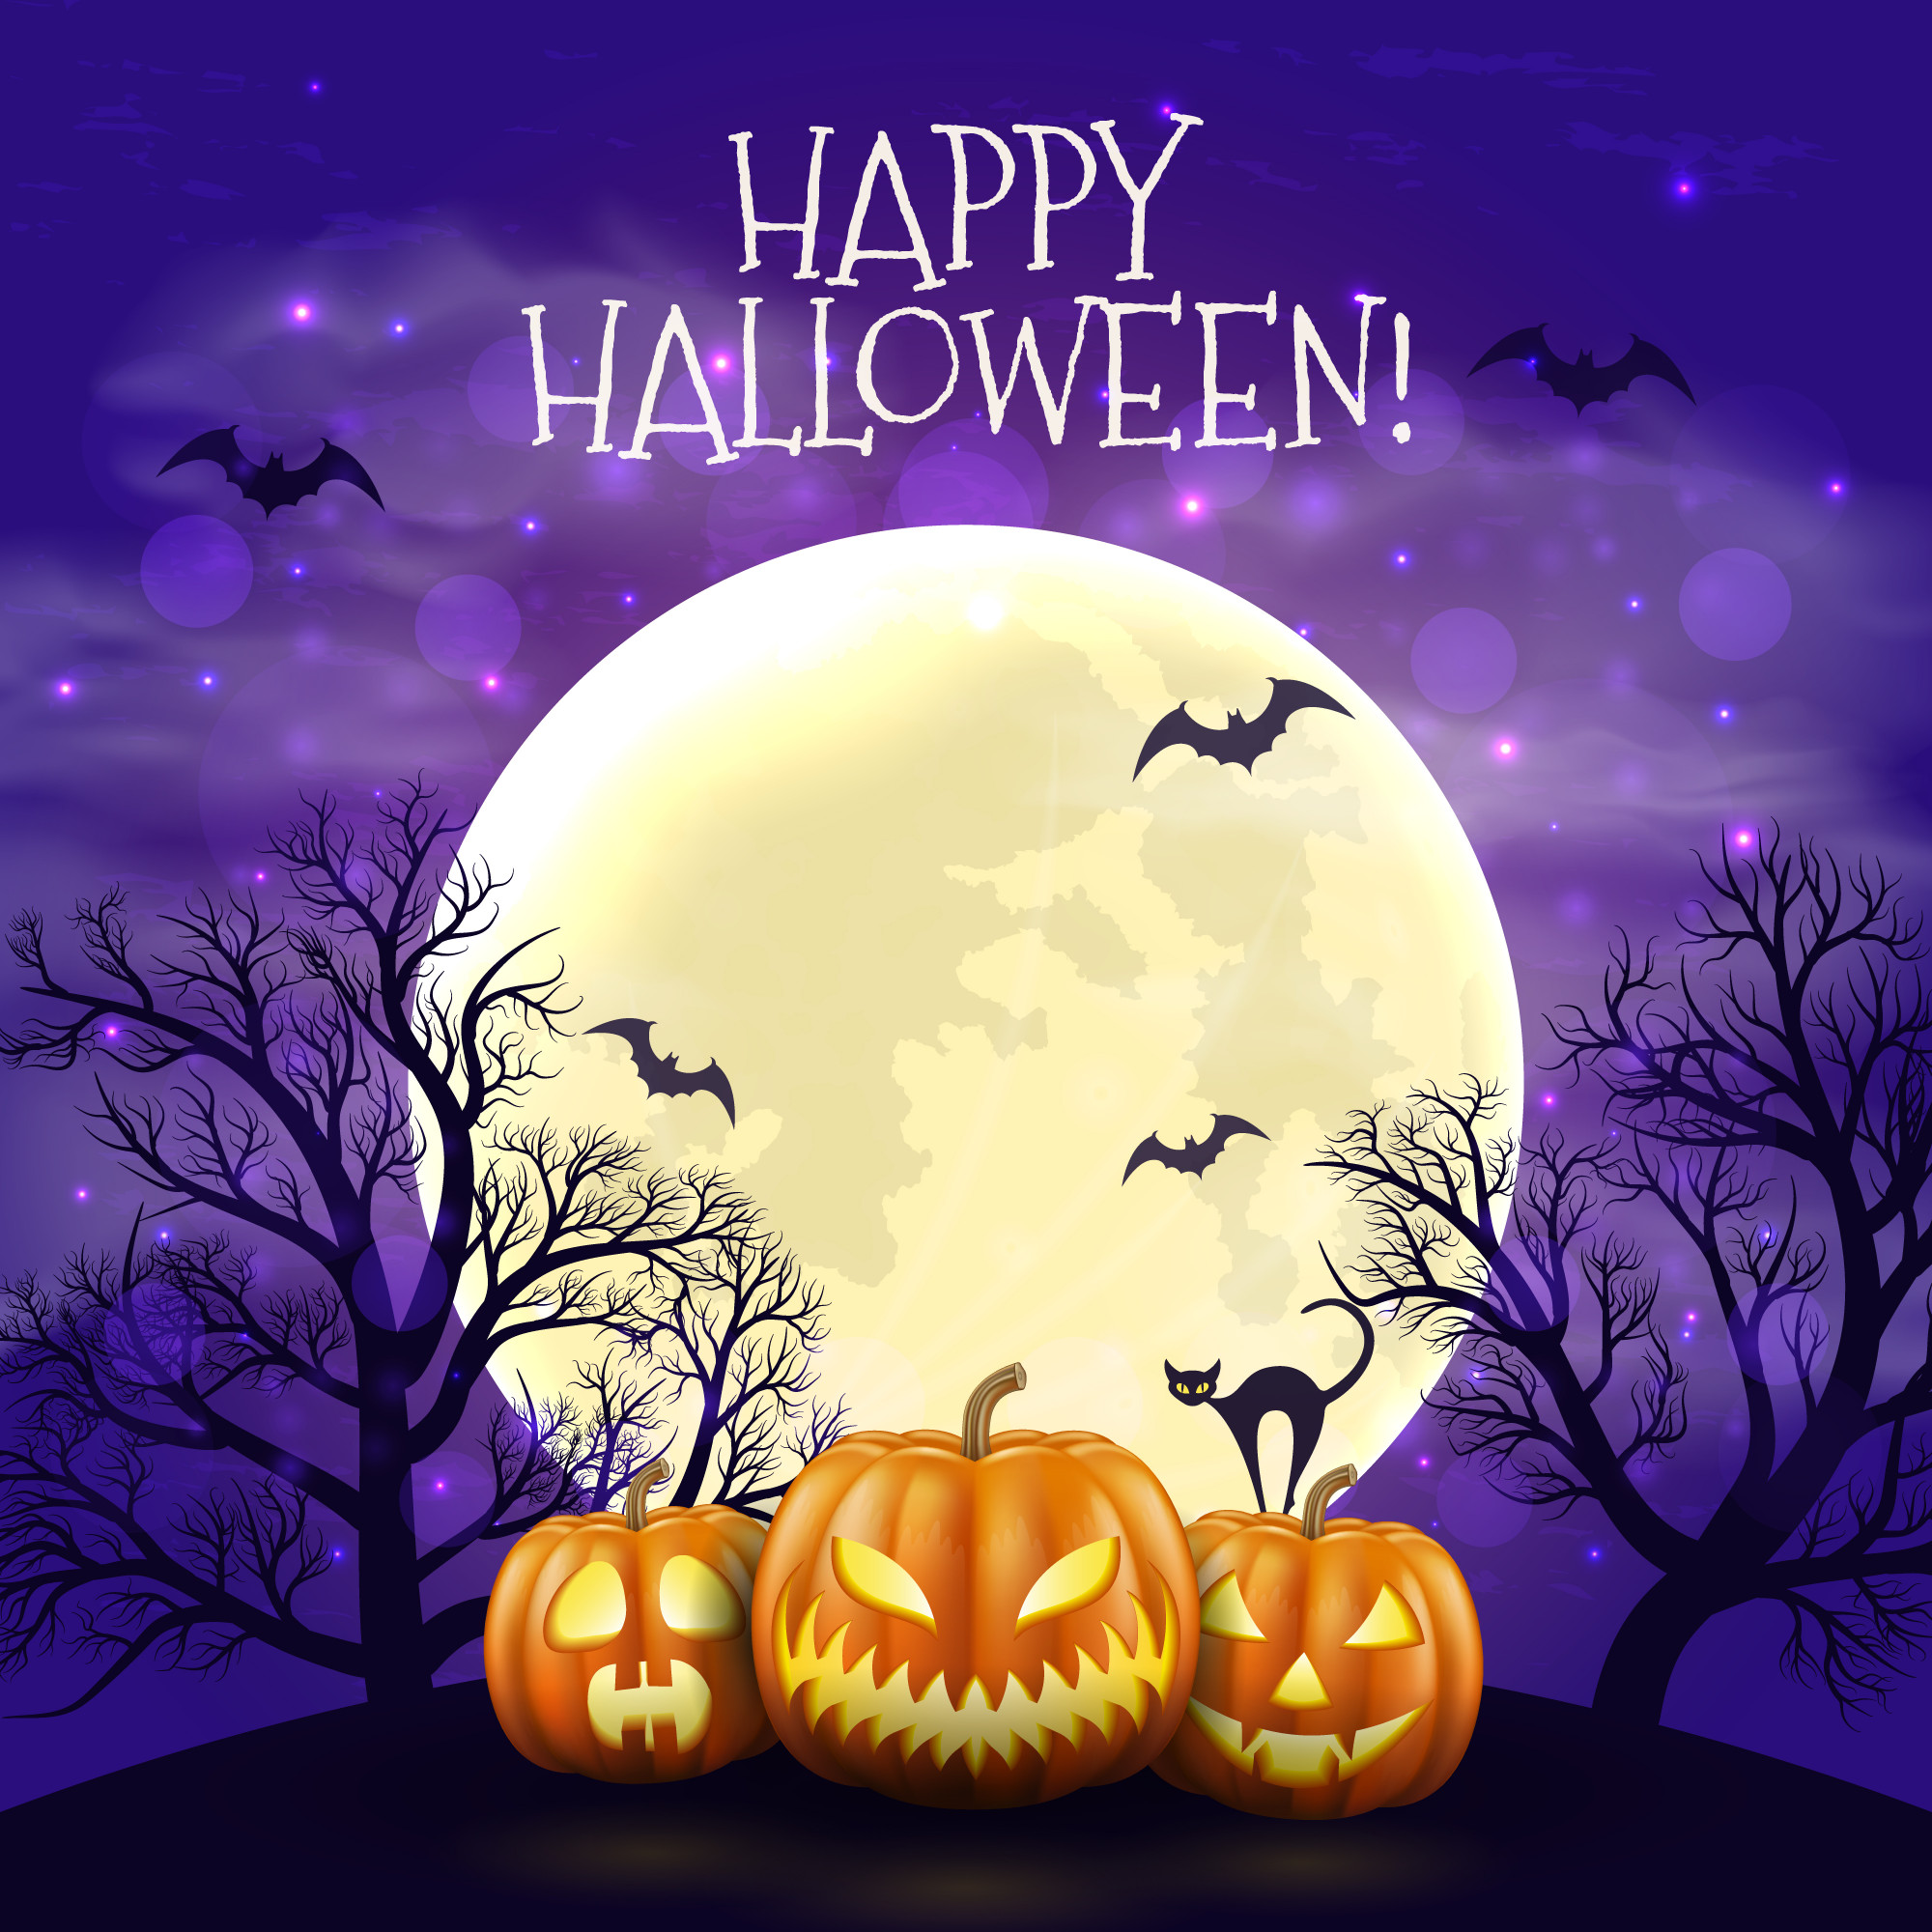 Happy Halloween night background with realistic scary pumpkins and moon.